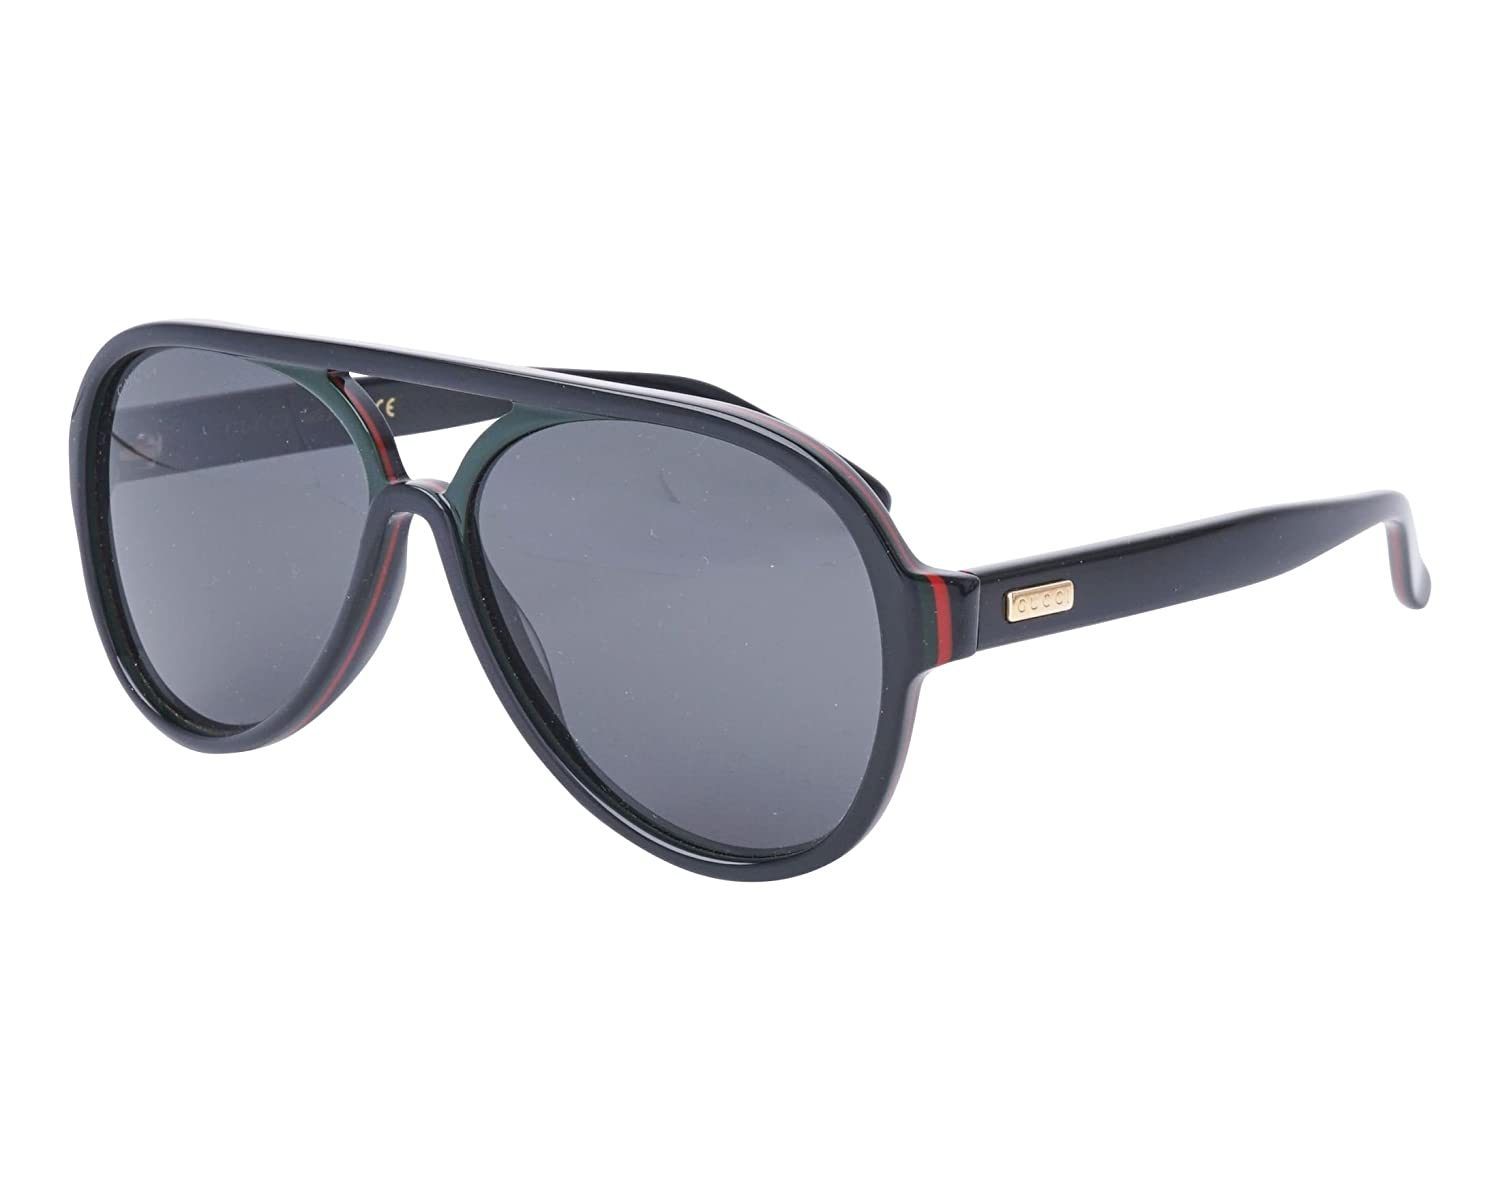 3532cbc75b Gucci GG0270S 002 Black GG0270S Pilot Sunglasses Lens Category 3 Size 57mm   Gucci  Amazon.co.uk  Clothing